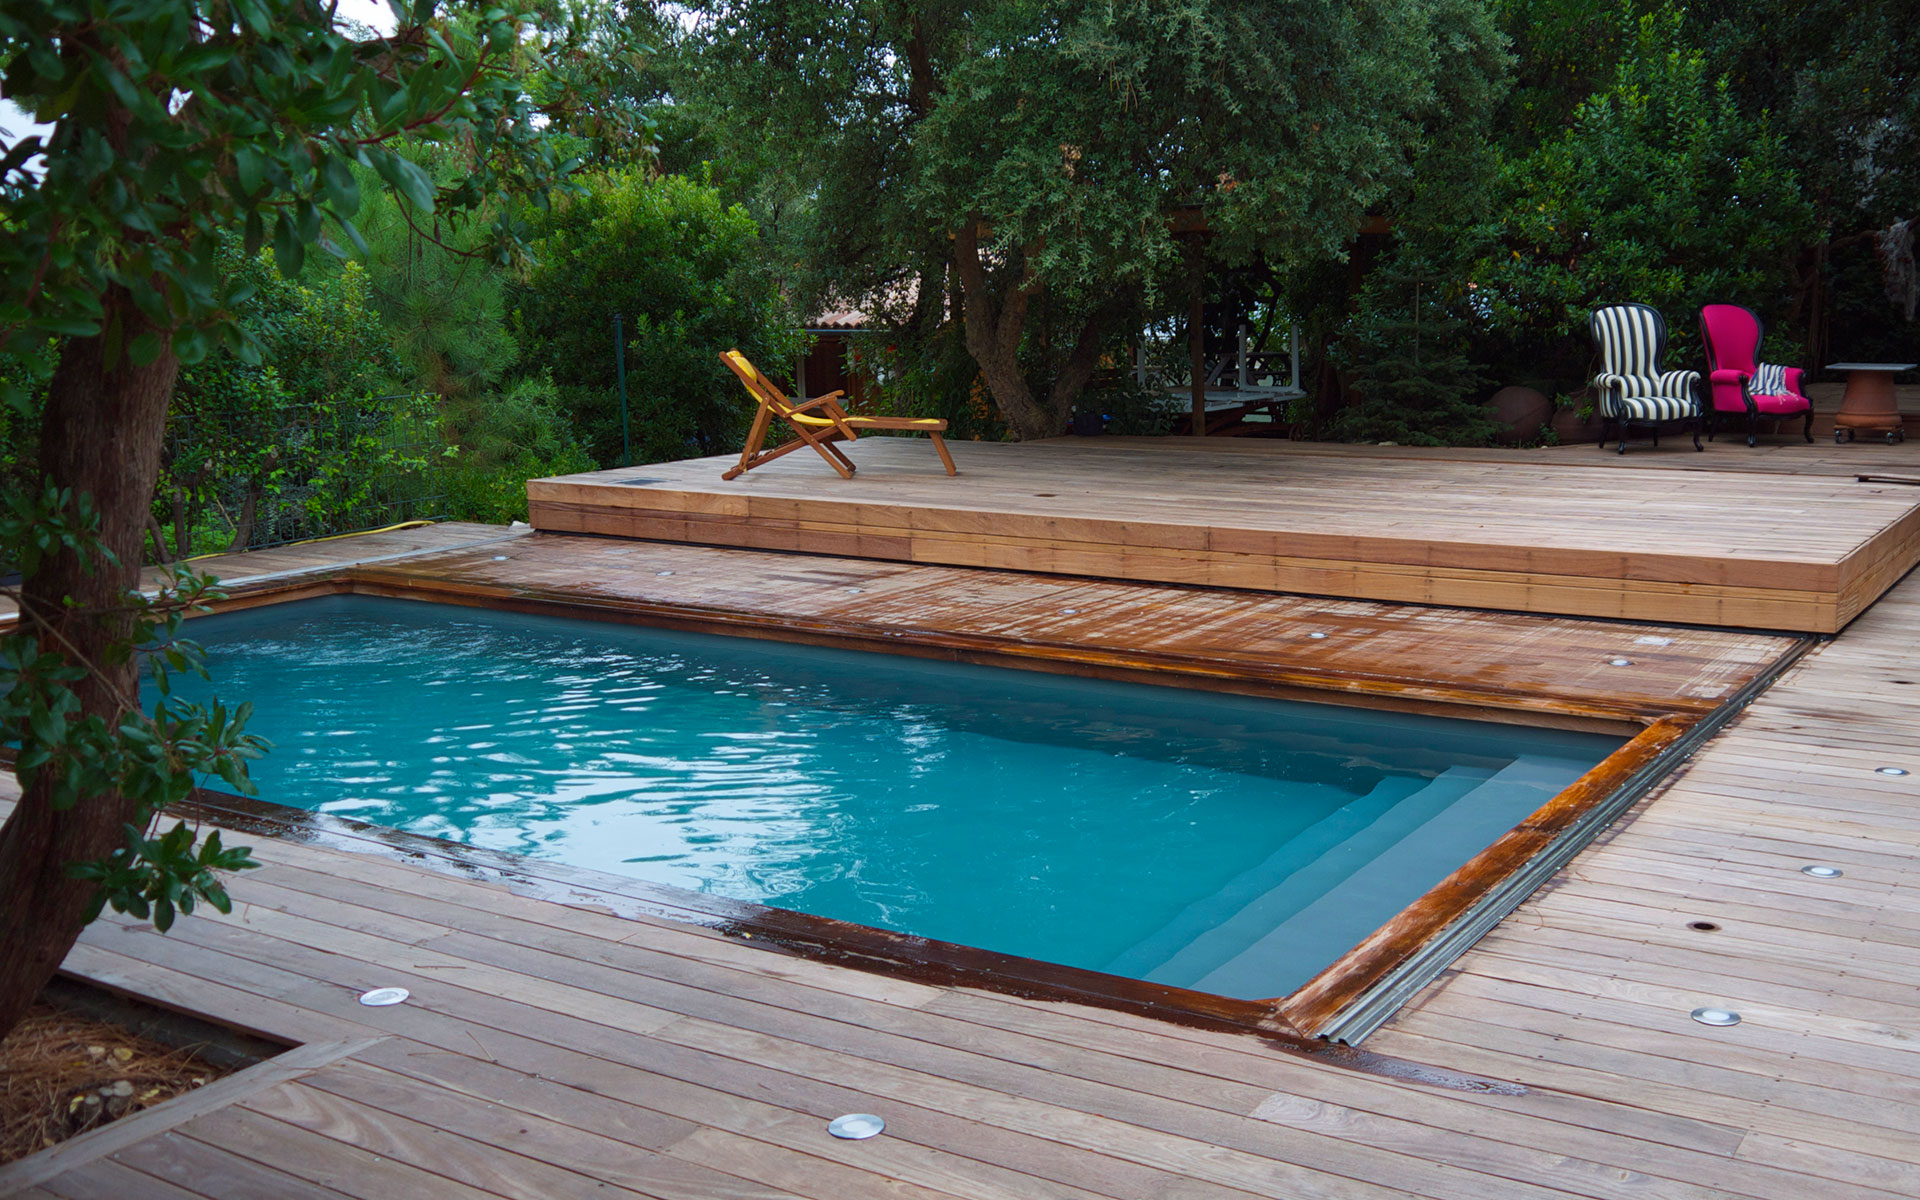 Terrasse mobile pour piscine hidden pool fond mobile pour piscine hidden pool - Bois pour terrasse piscine ...